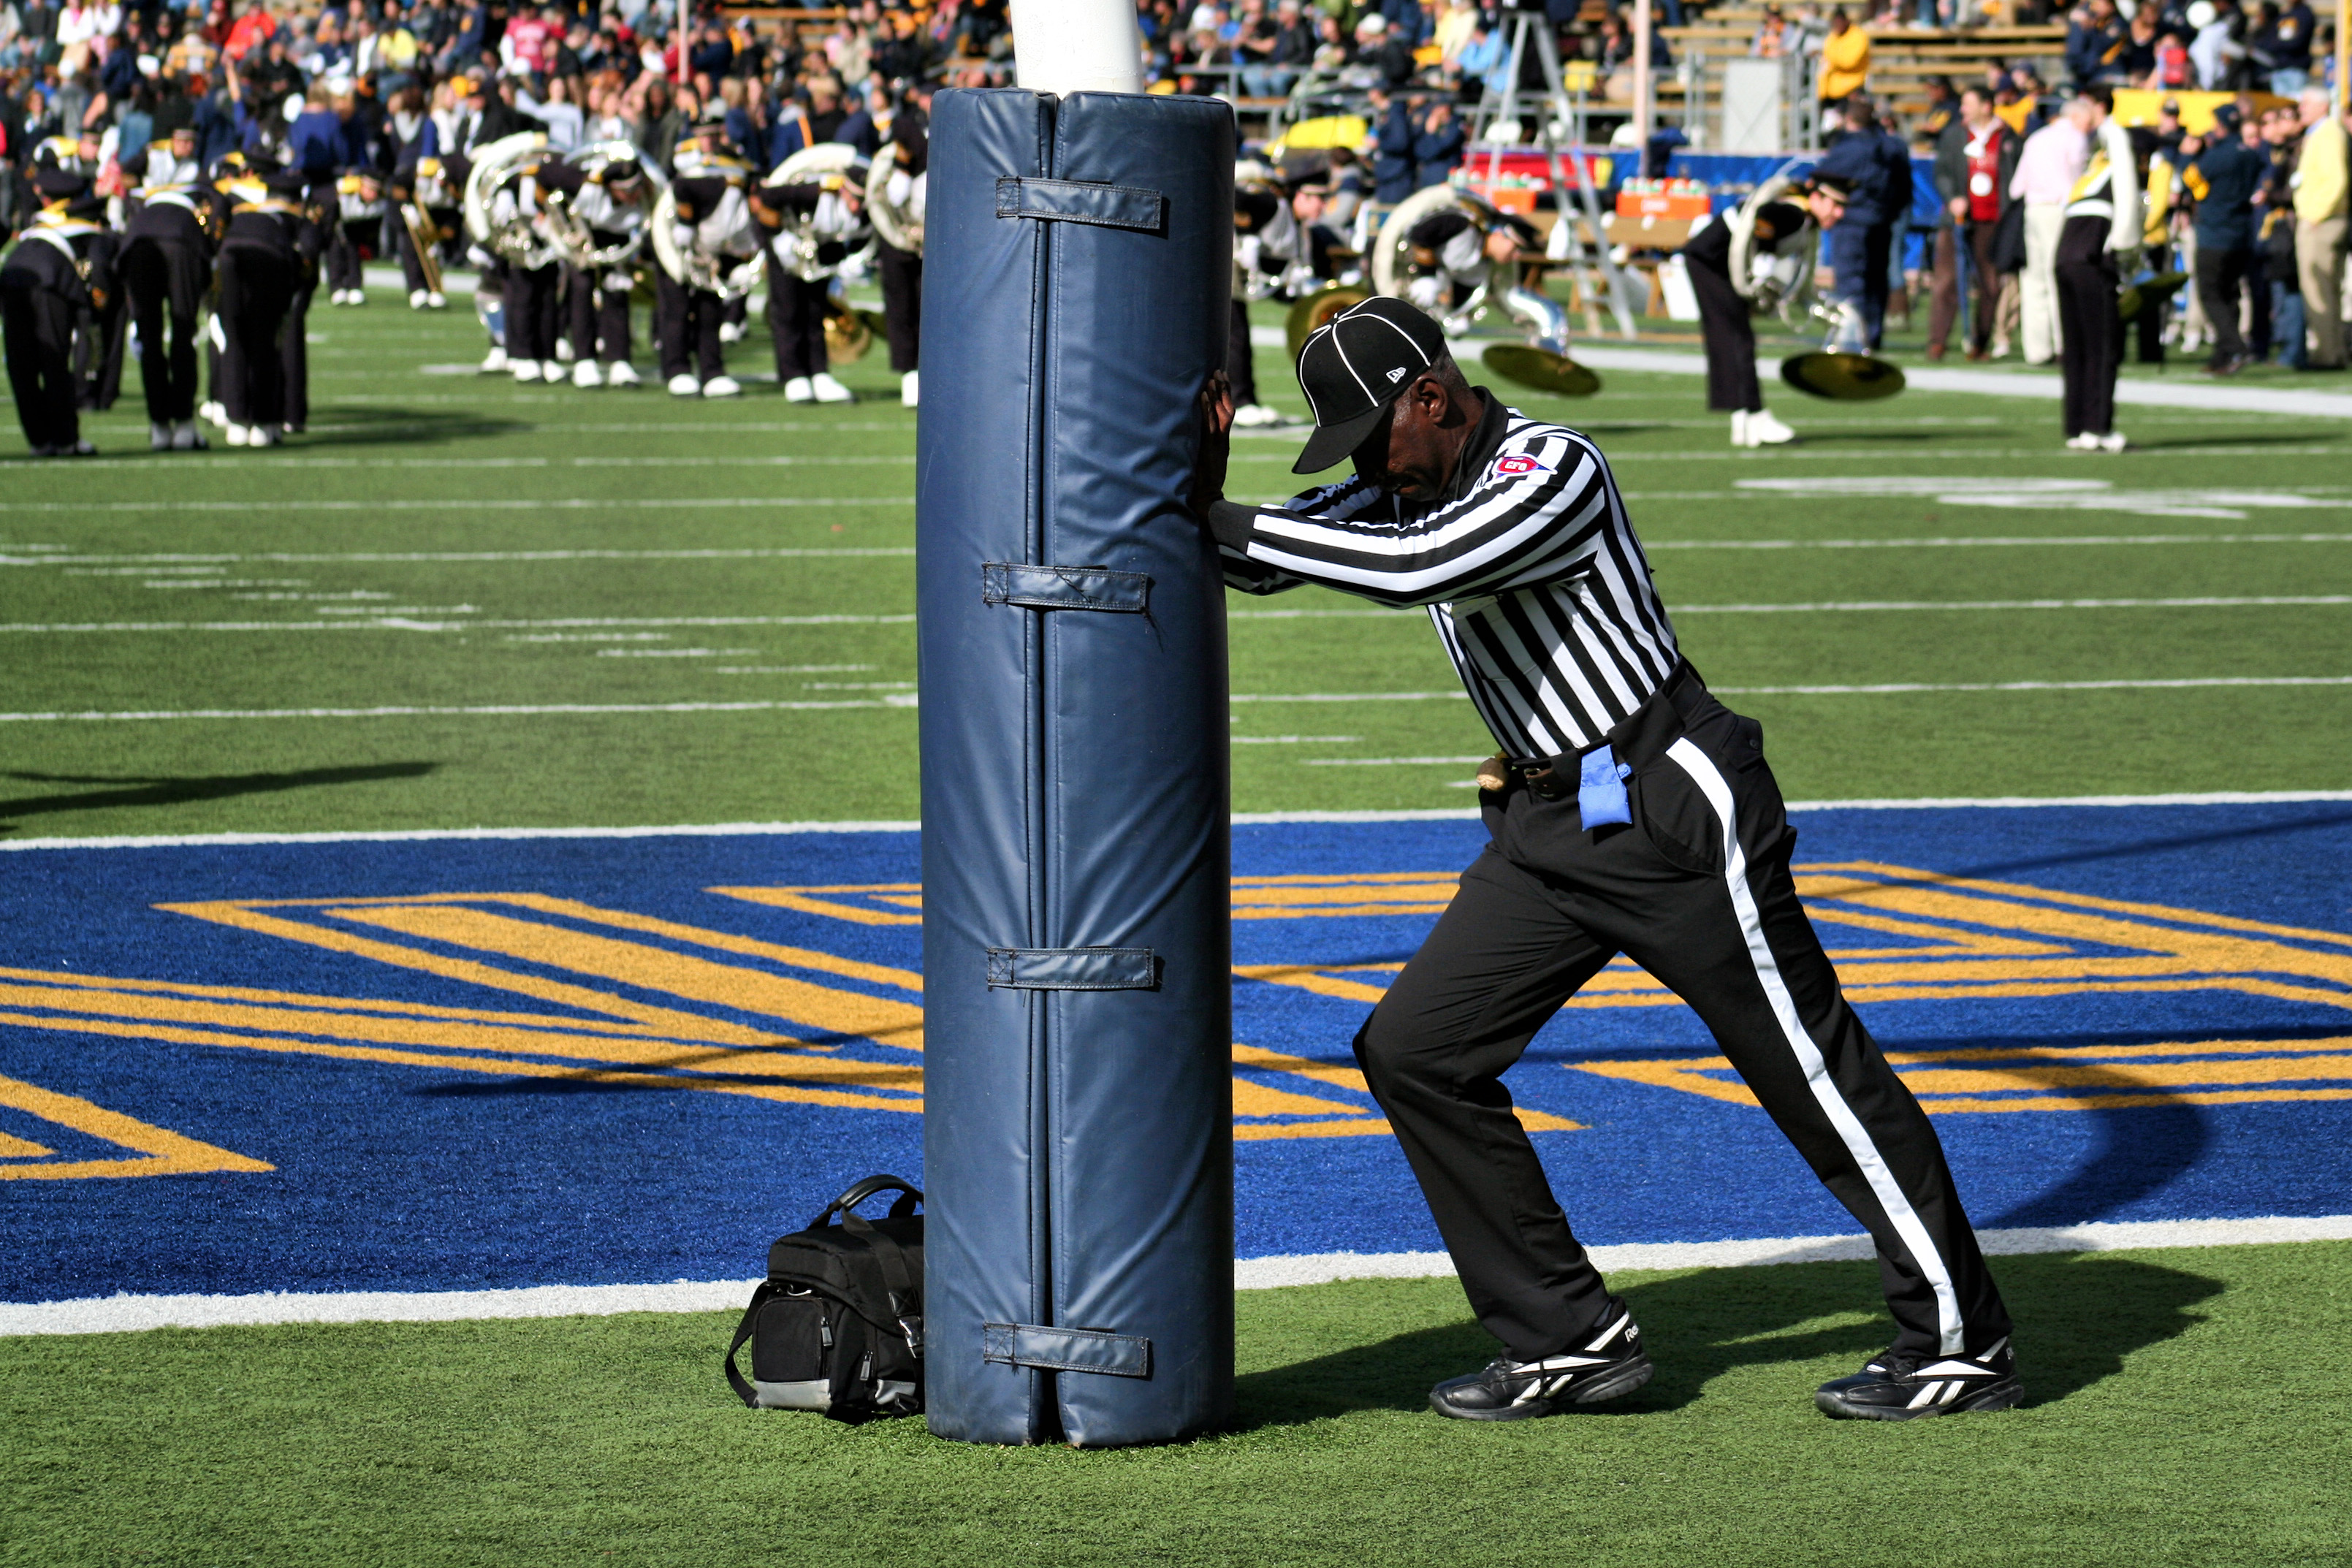 The Officials Task